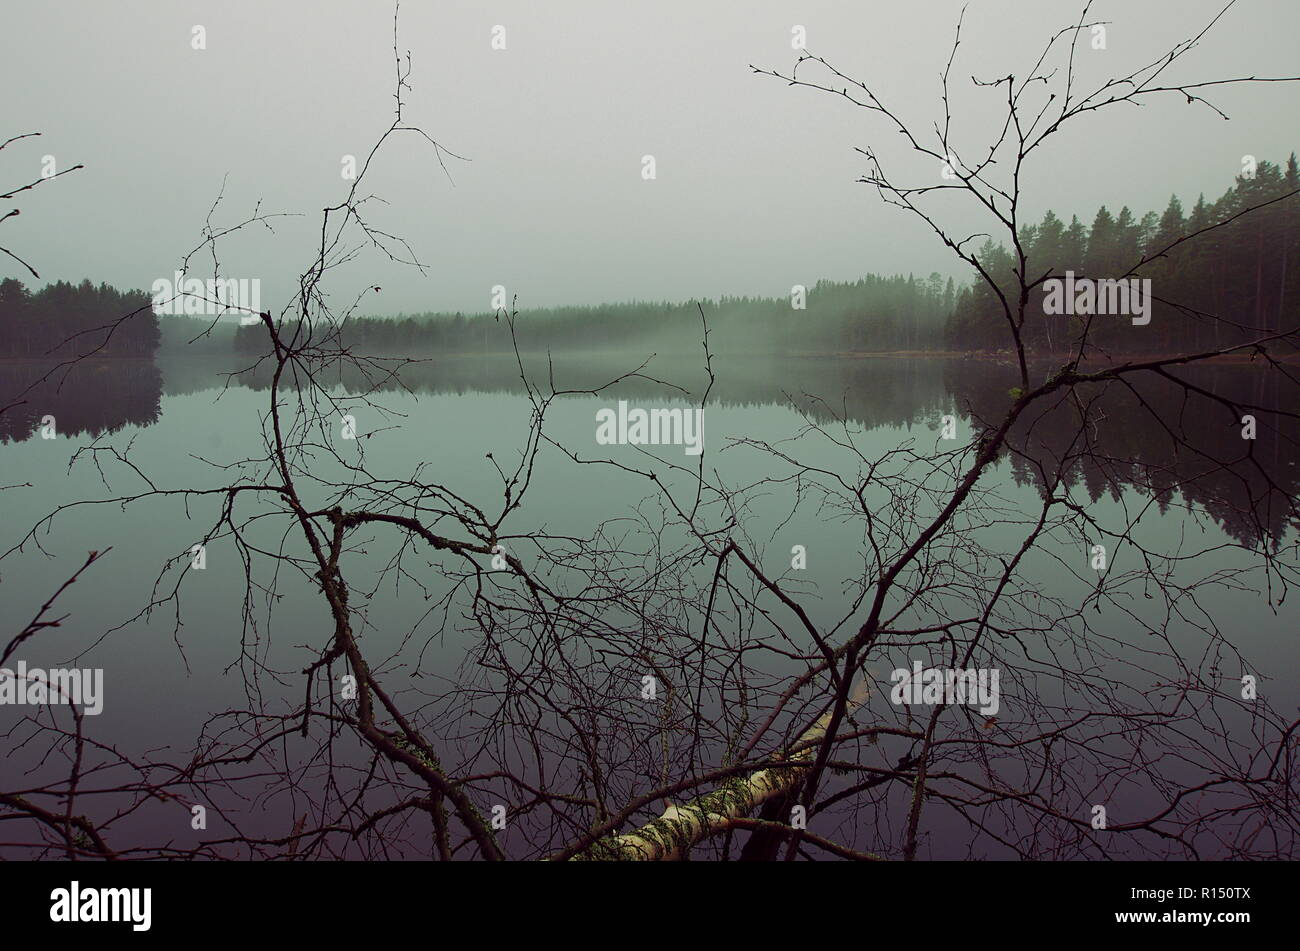 A foggy autumn afternoon over a lake in Dalarna - Stock Image